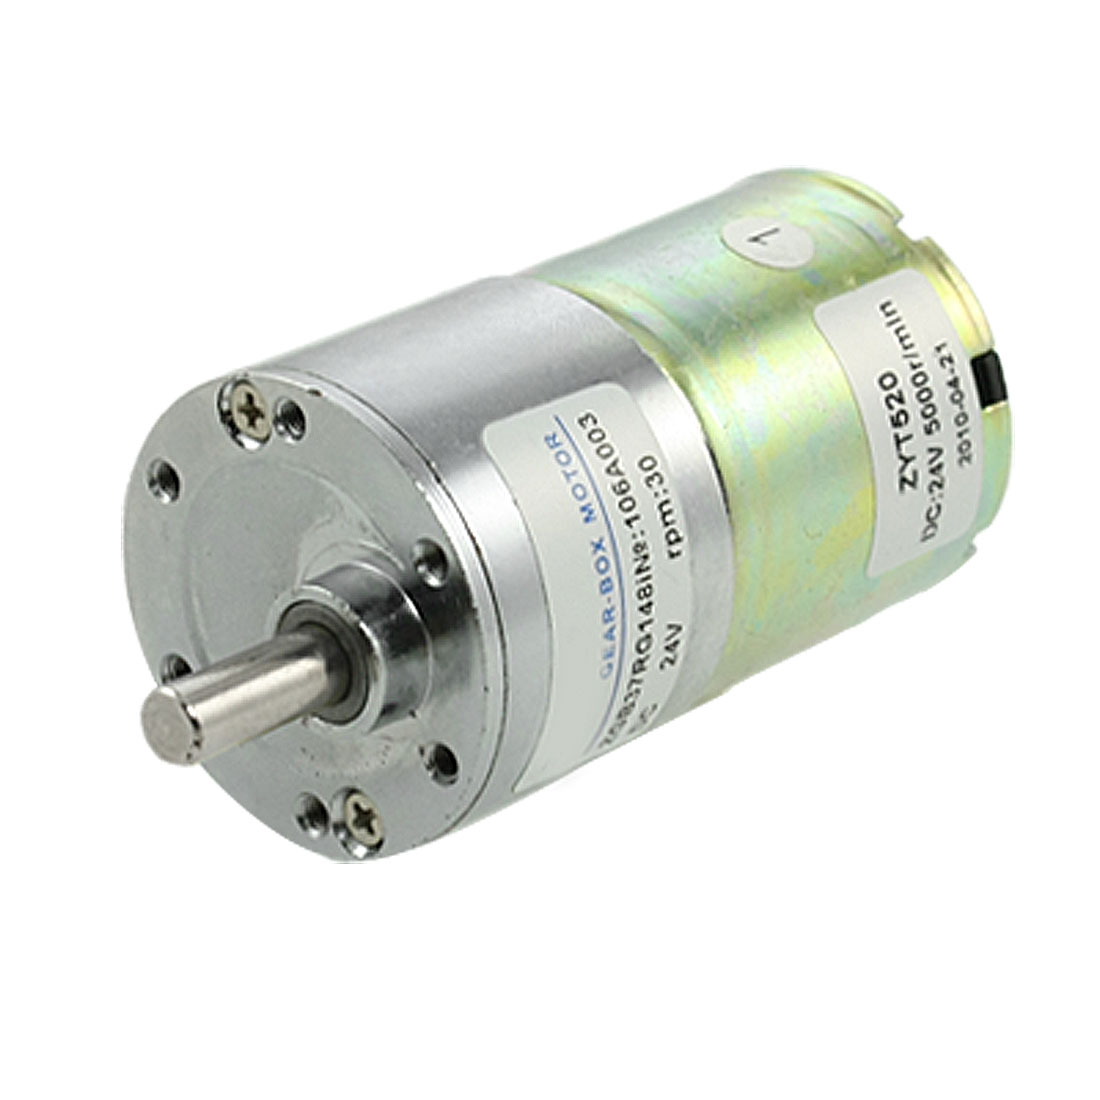 6mm Dia Shaft DC 24V 30RPM Speed Reducing Gearbox Motor 35.5mm x 85mm